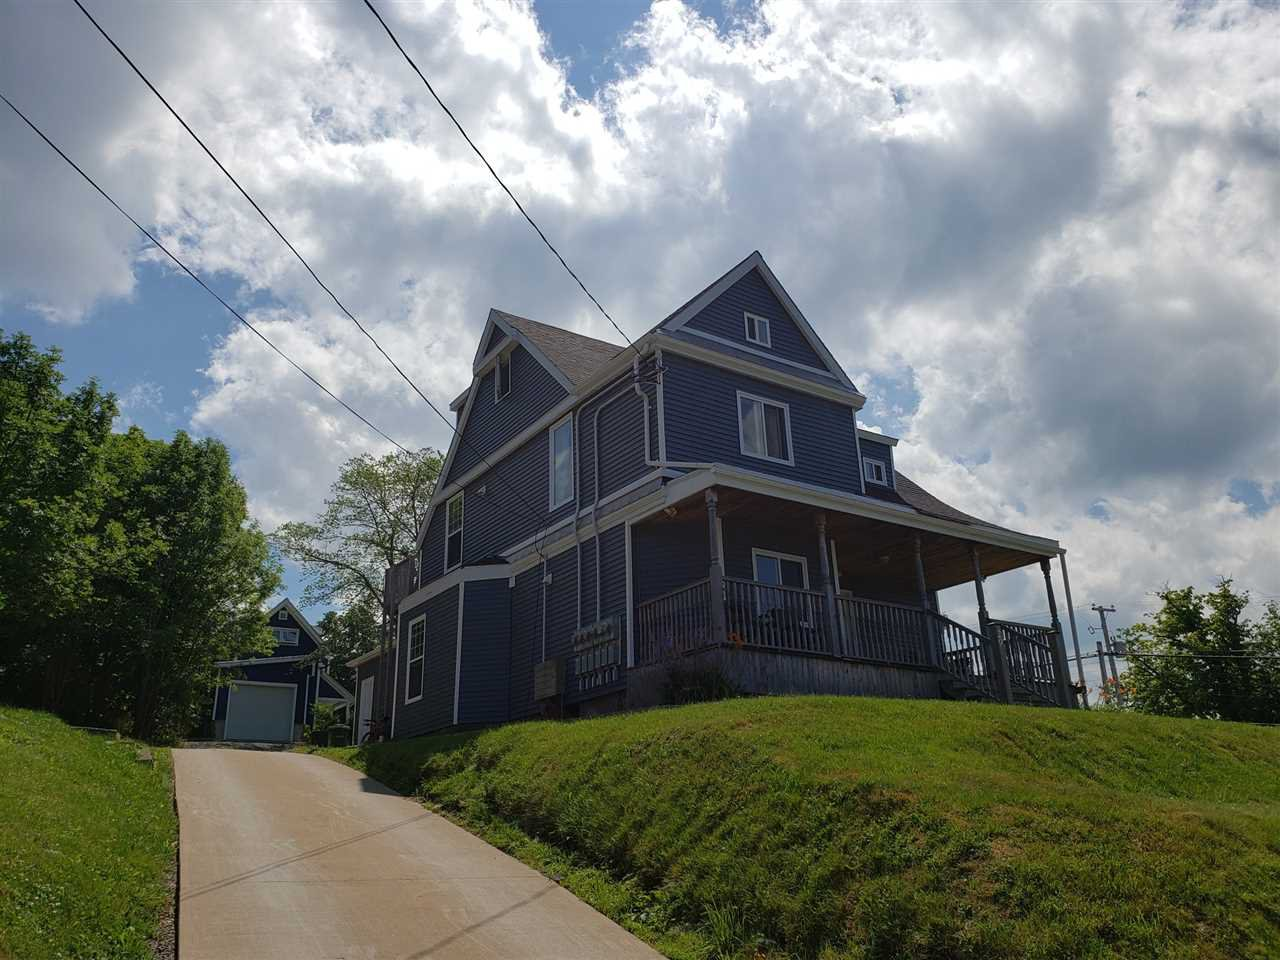 Photo 5: Photos: 29 Prospect Street in Wolfville: 404-Kings County Multi-Family for sale (Annapolis Valley)  : MLS®# 202014423